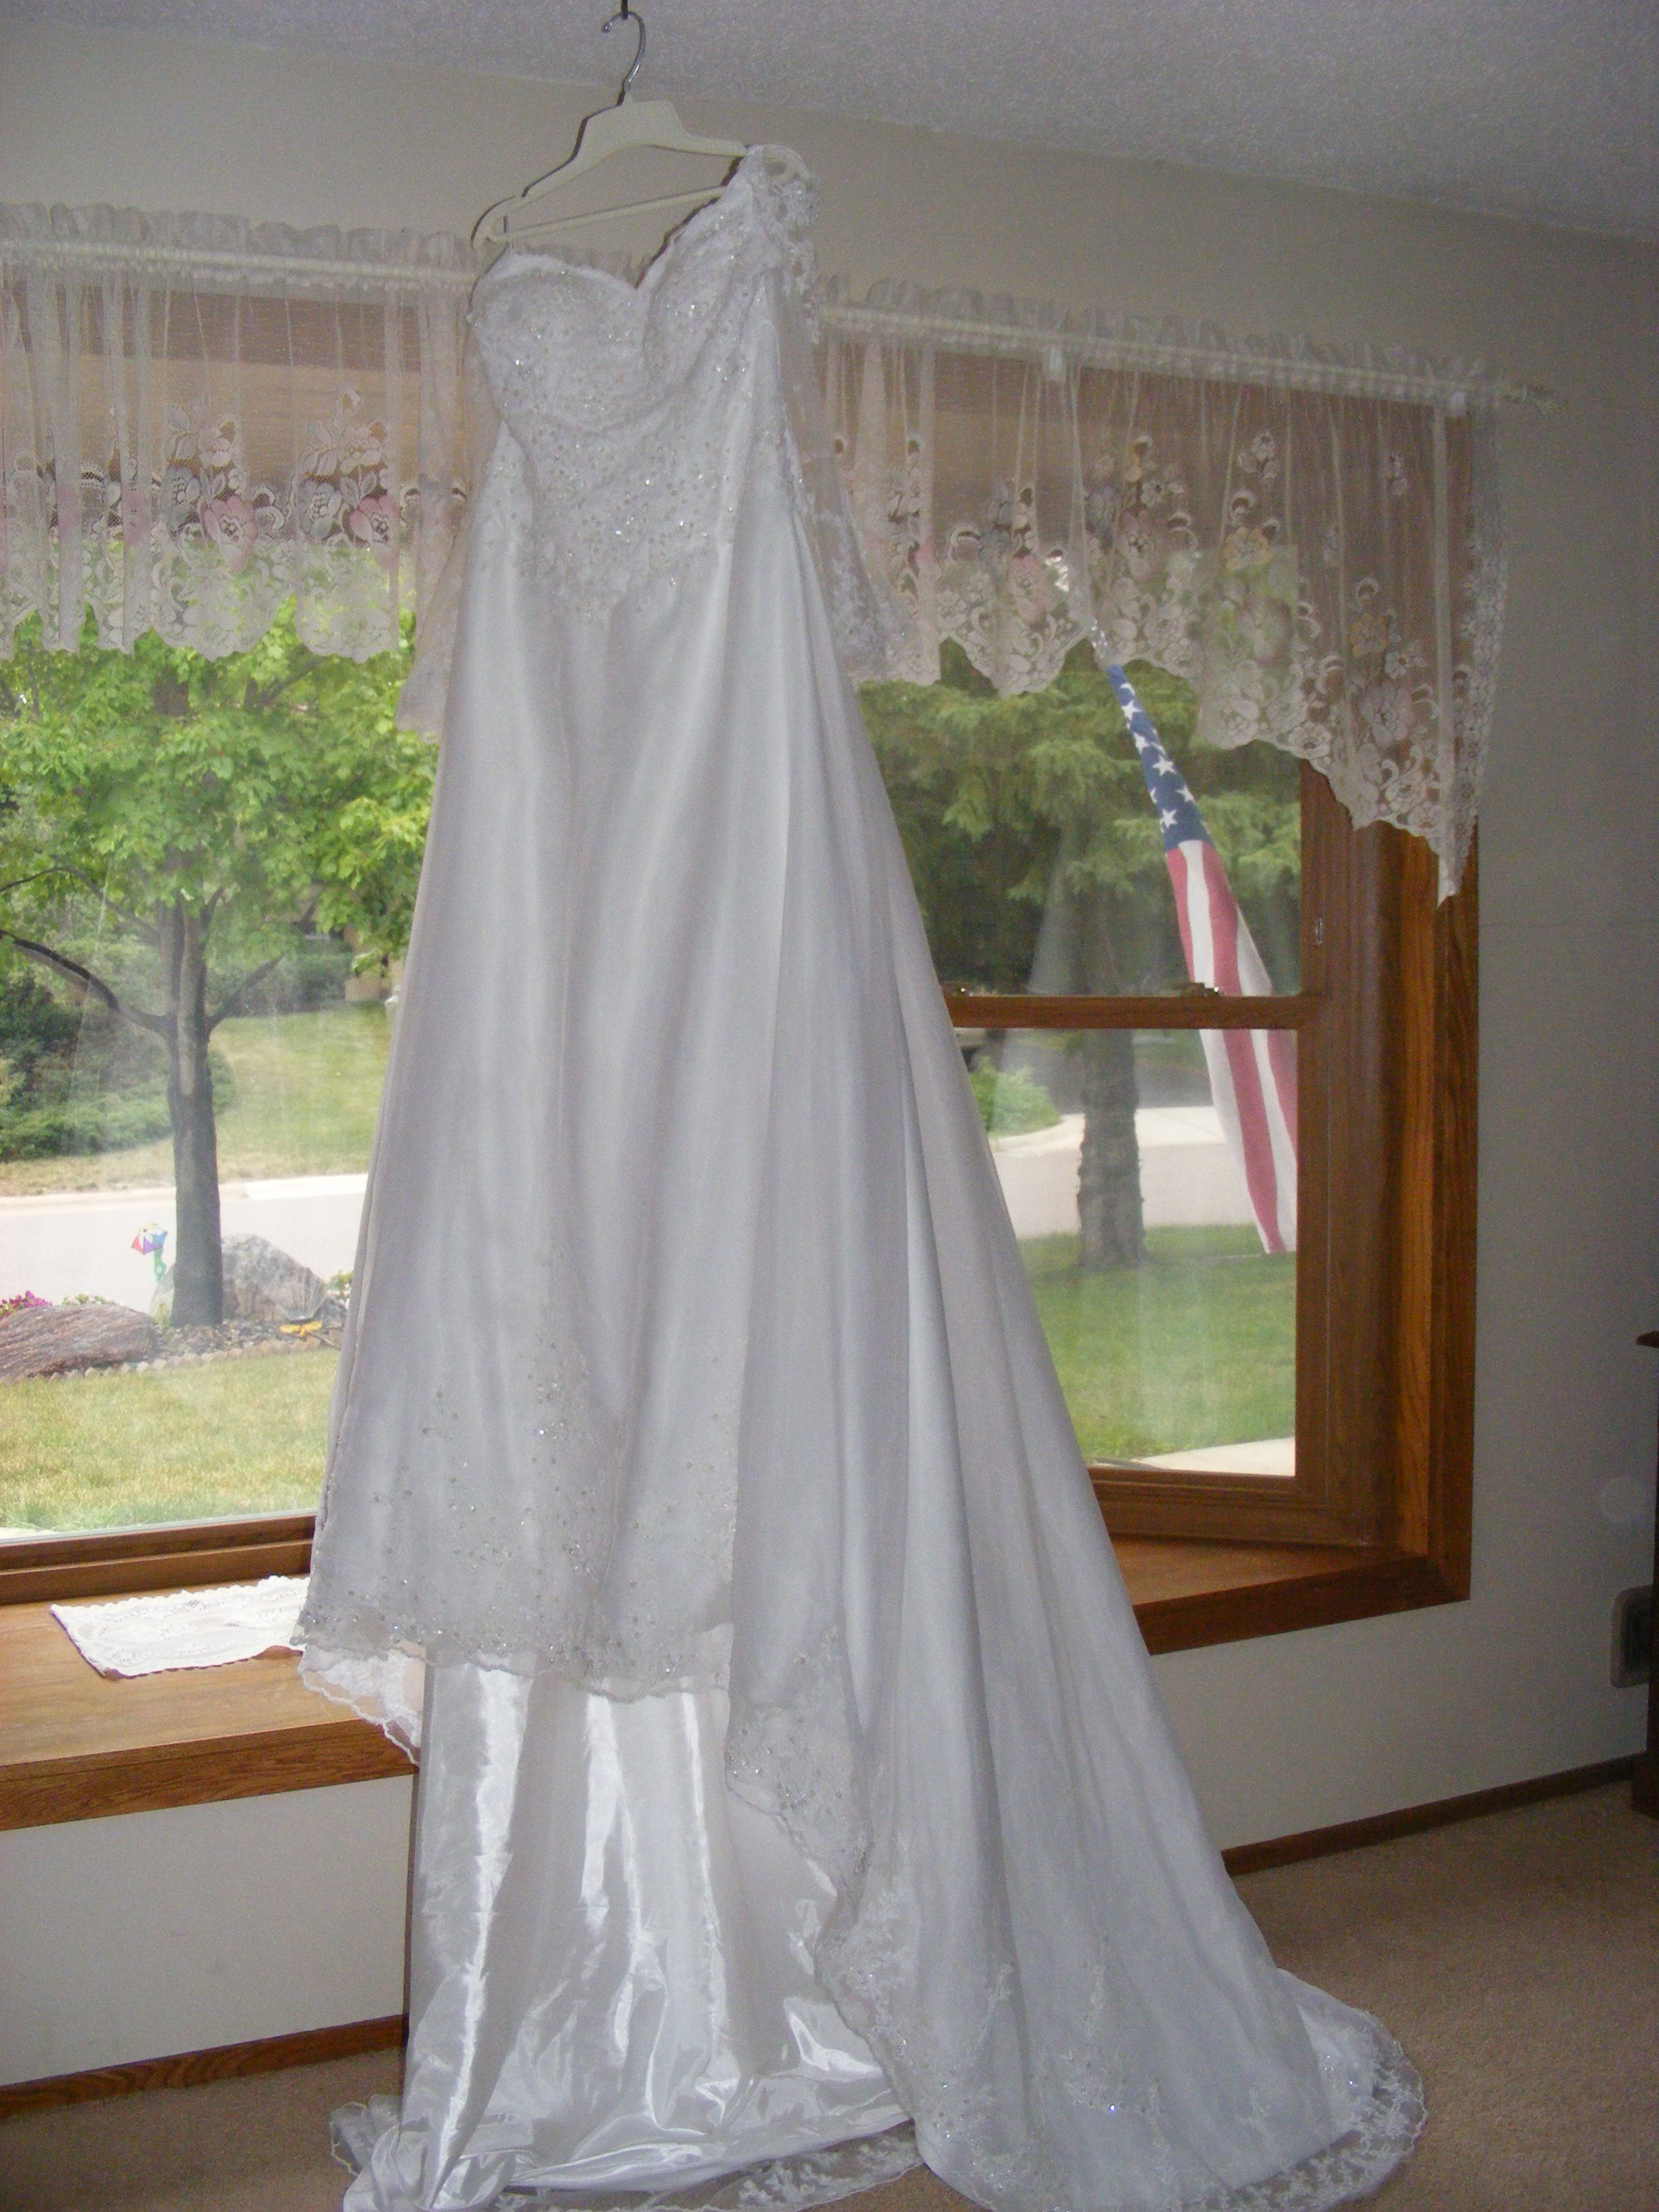 Loanables 2 Wedding Dresses Rental Located In Burnsville Mn